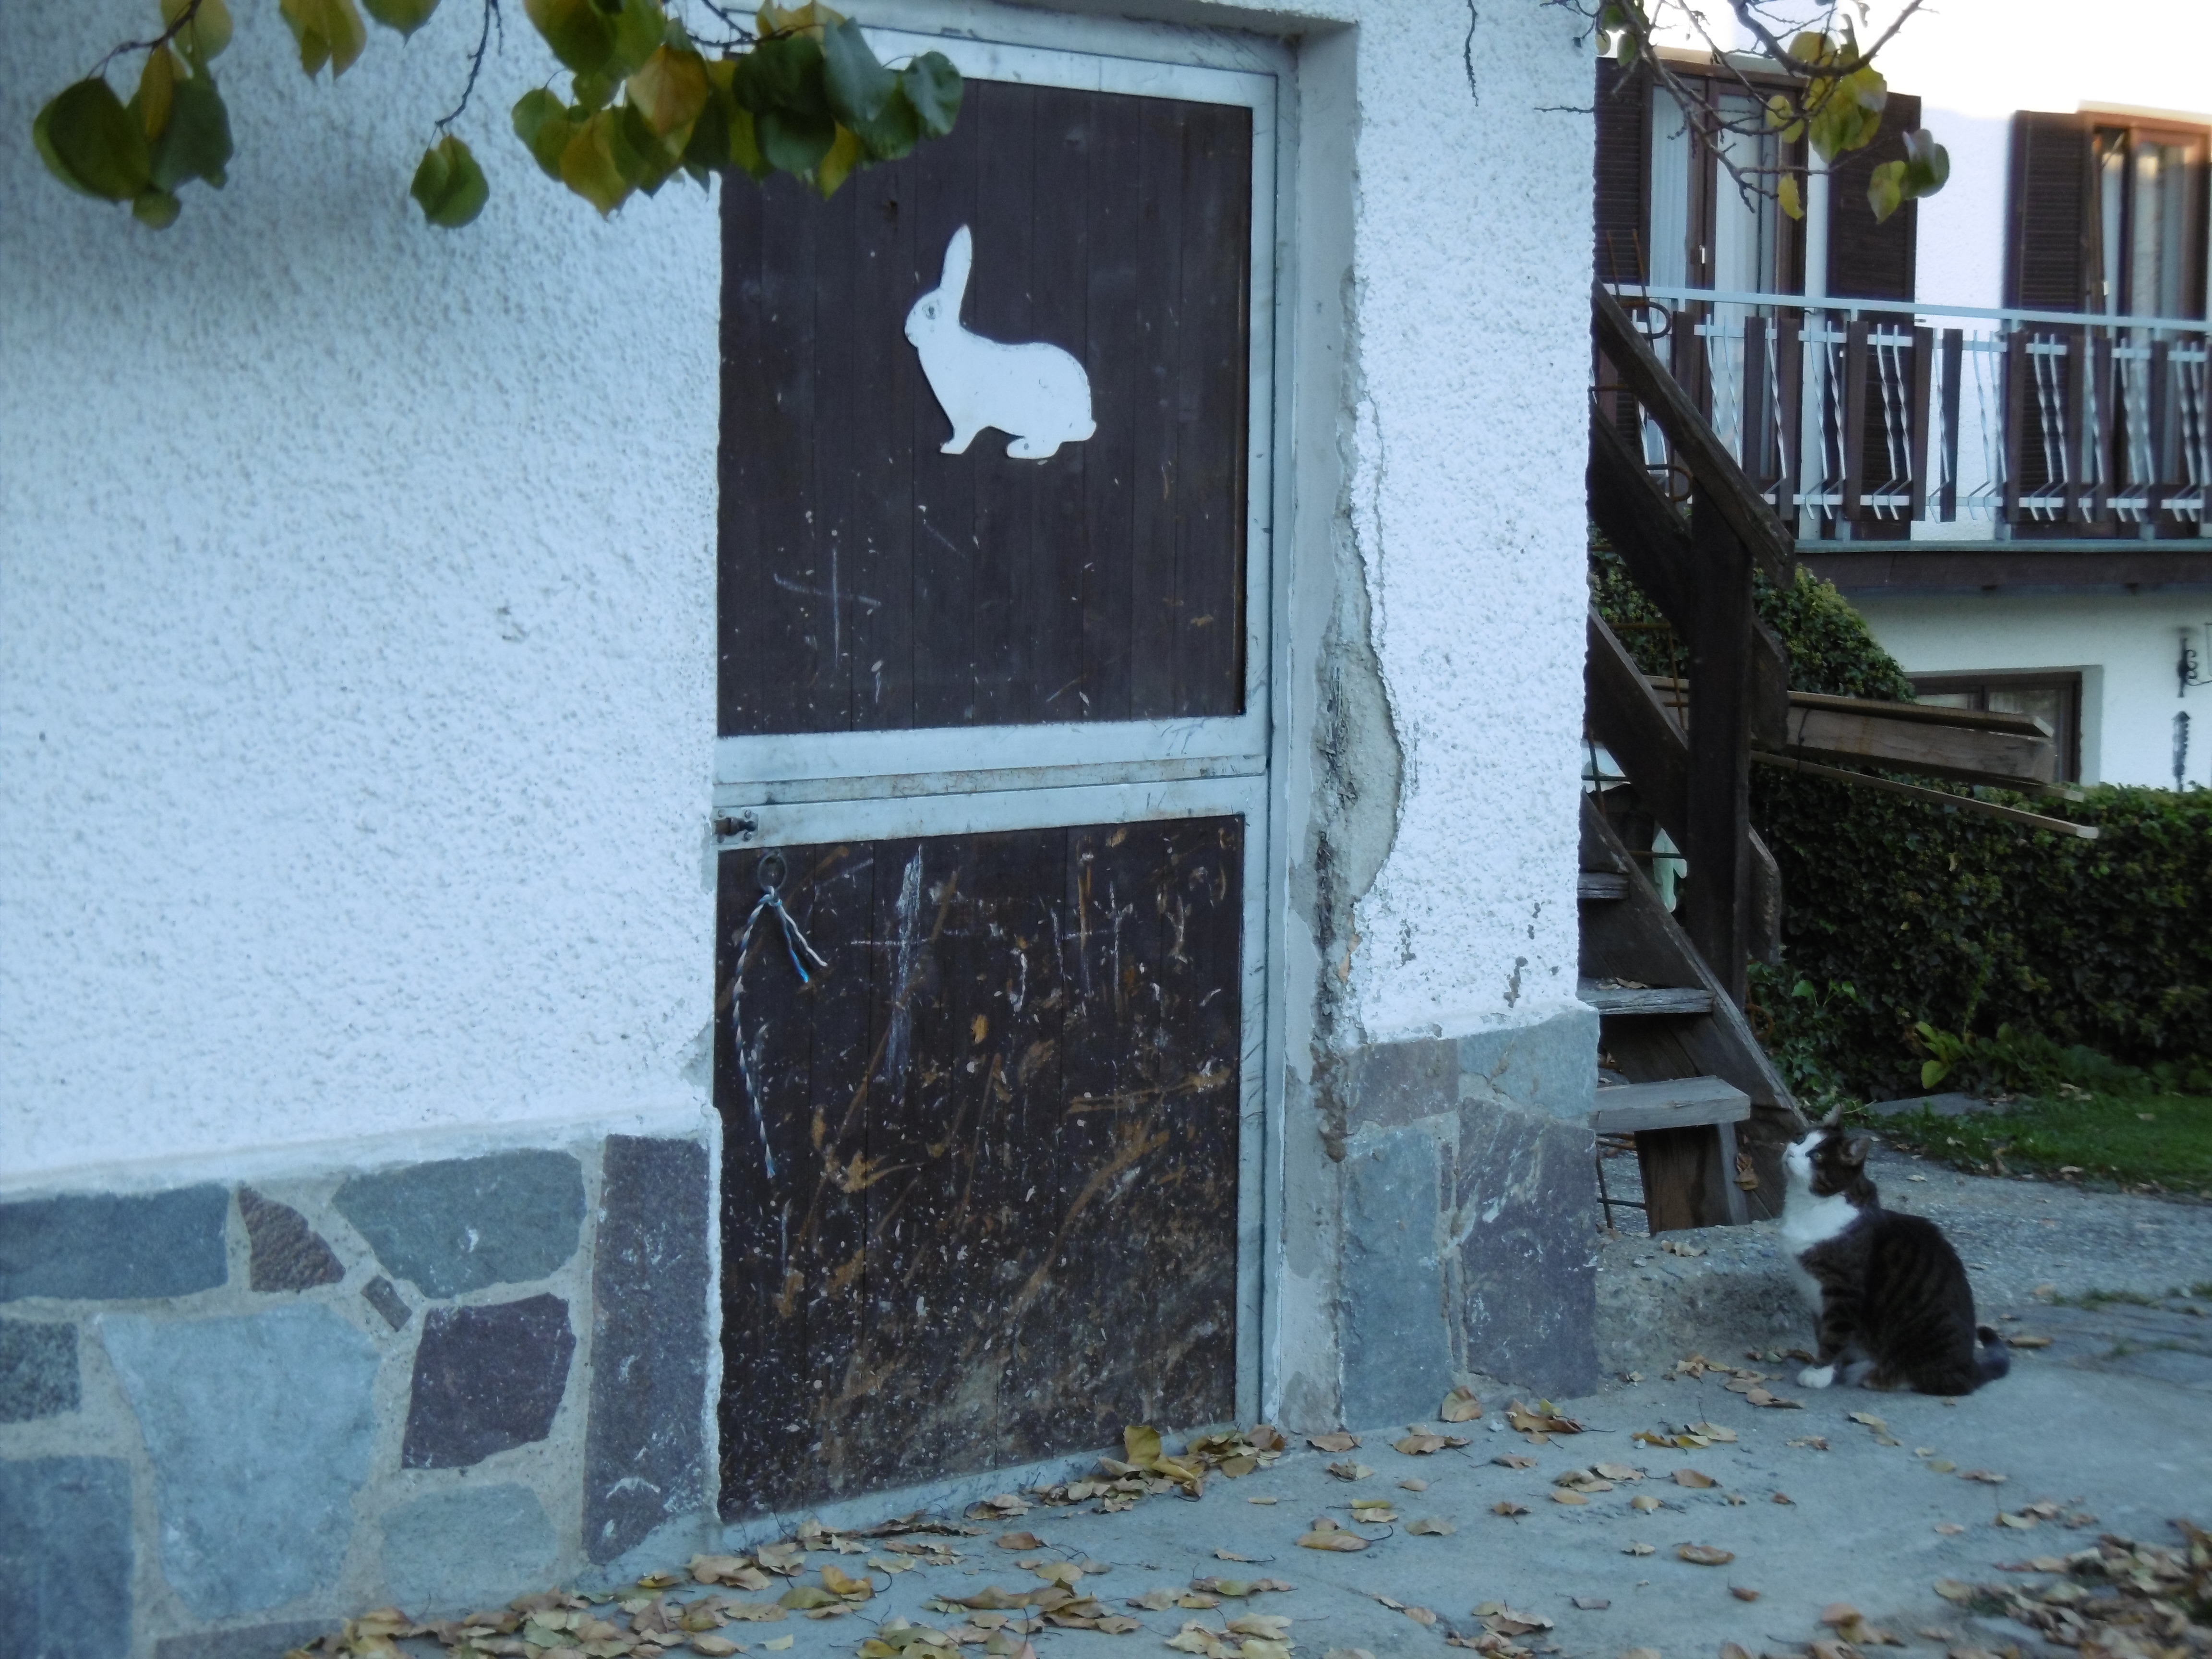 A photo of a tabbycat sitting on a pathway and staring at a closed door with a white rabbit painted on it